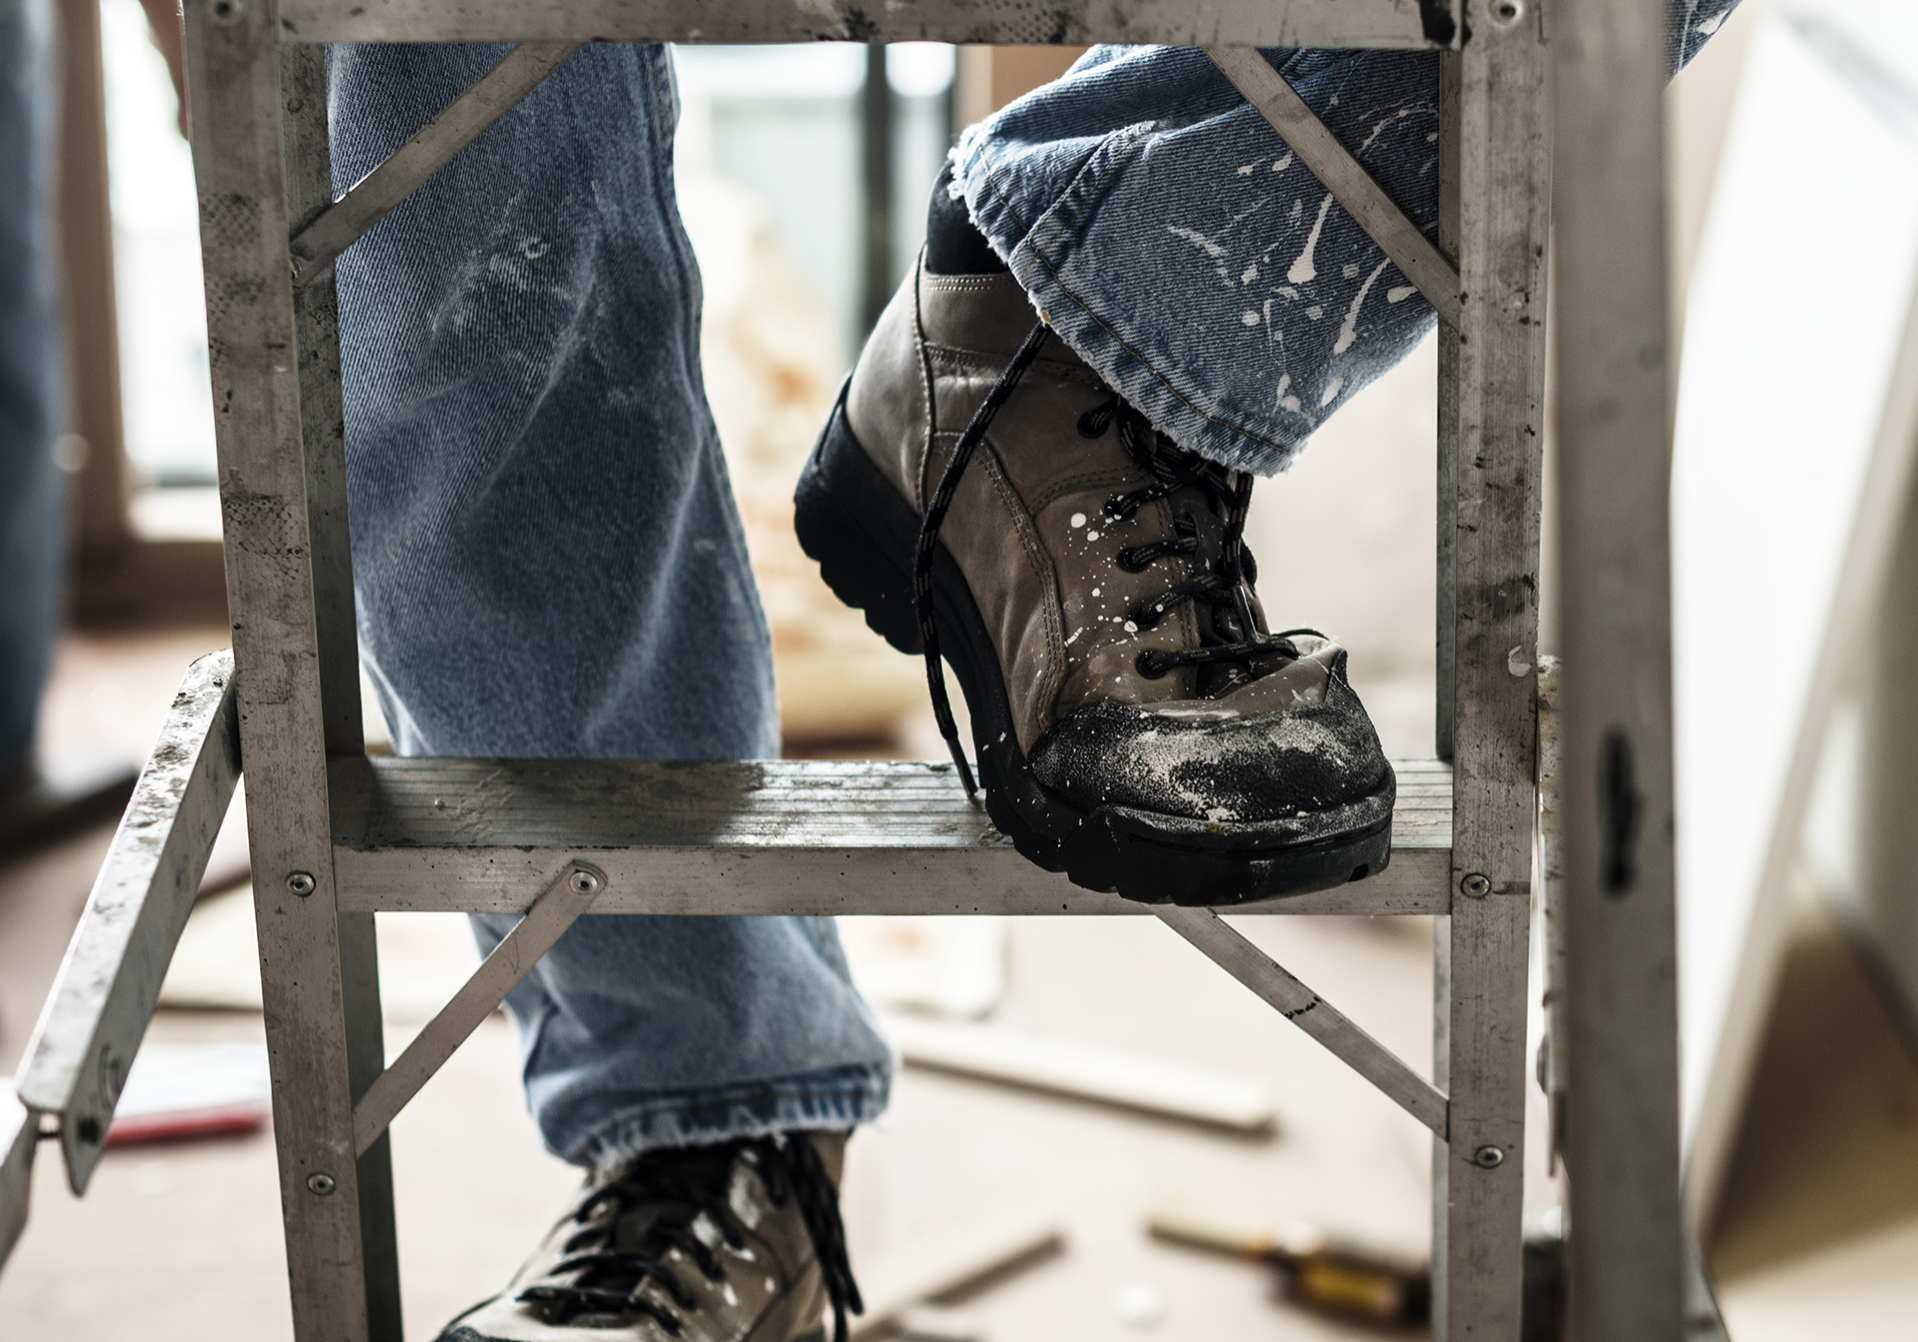 Construction worker stepping on ladder